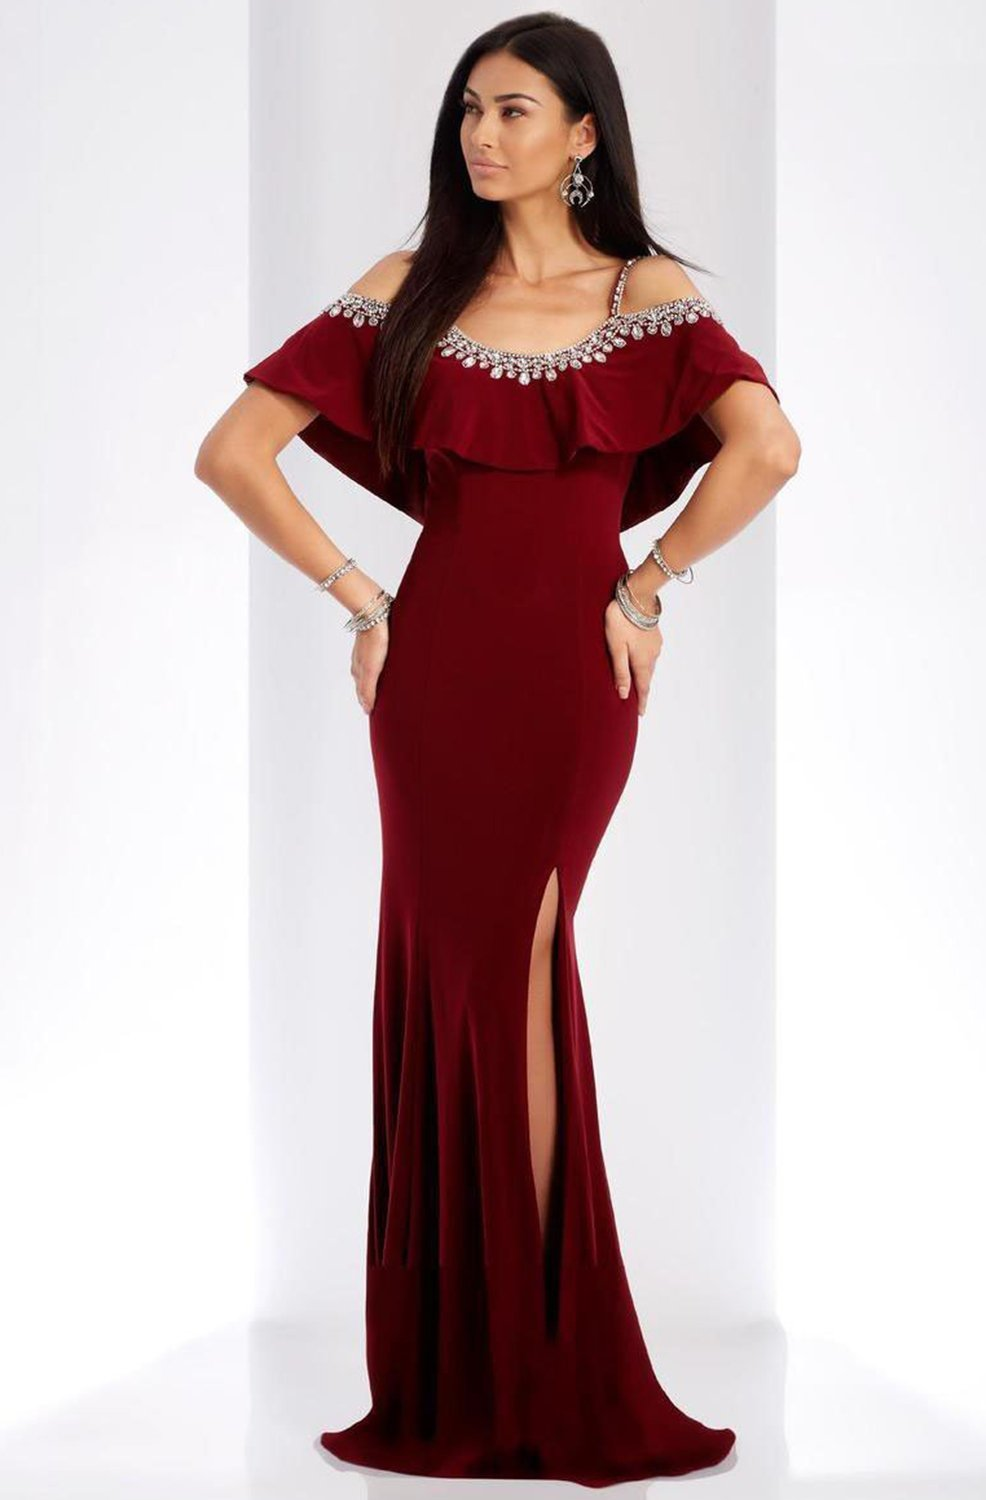 Clarisse - 3497 Jeweled Scoop Neck Sheath Dress in Red